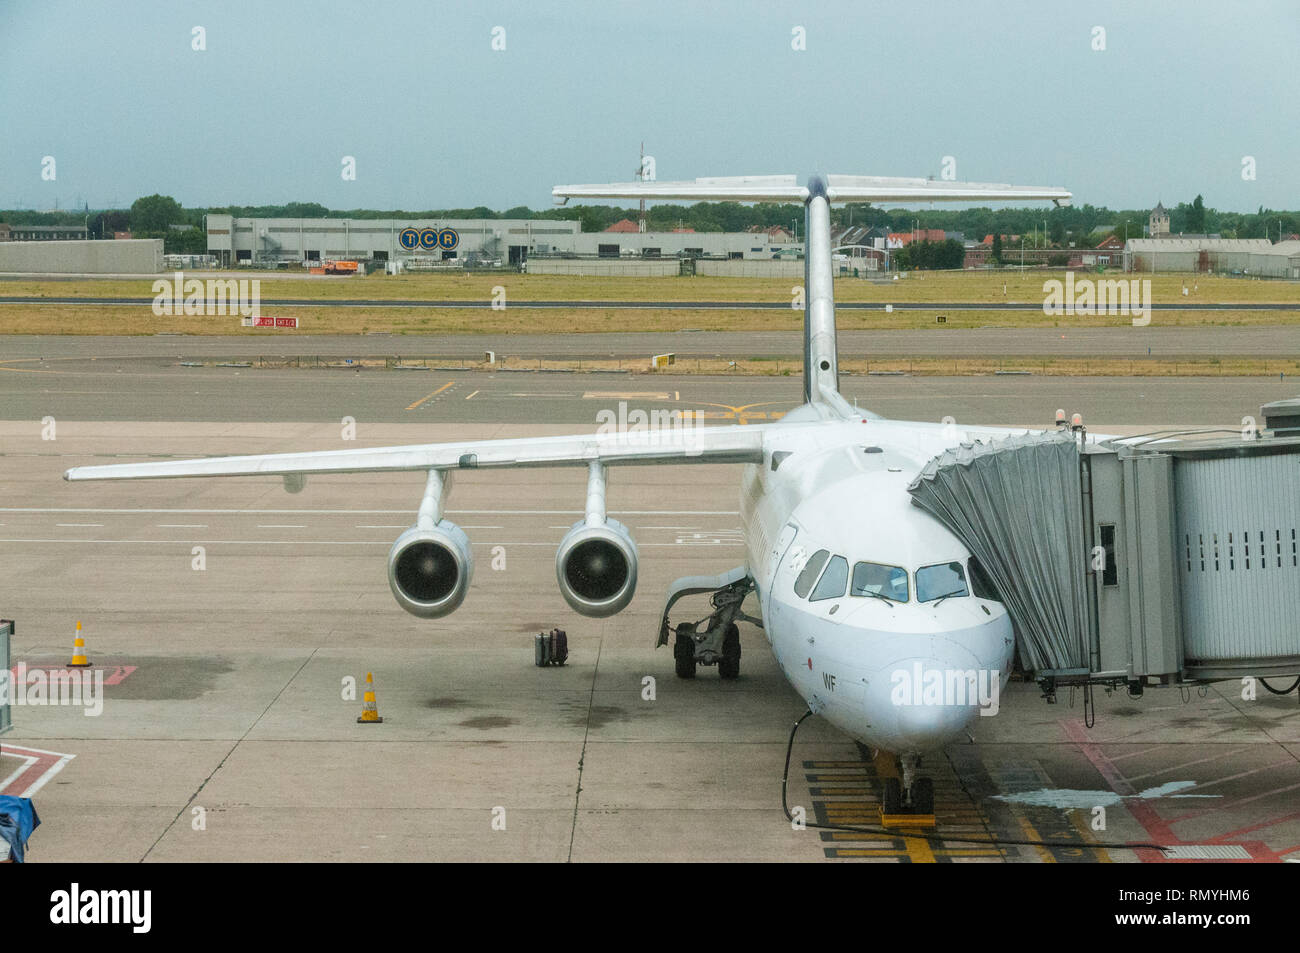 Bea-146 Avroliner RJ parked at Brussels Airport - Stock Image